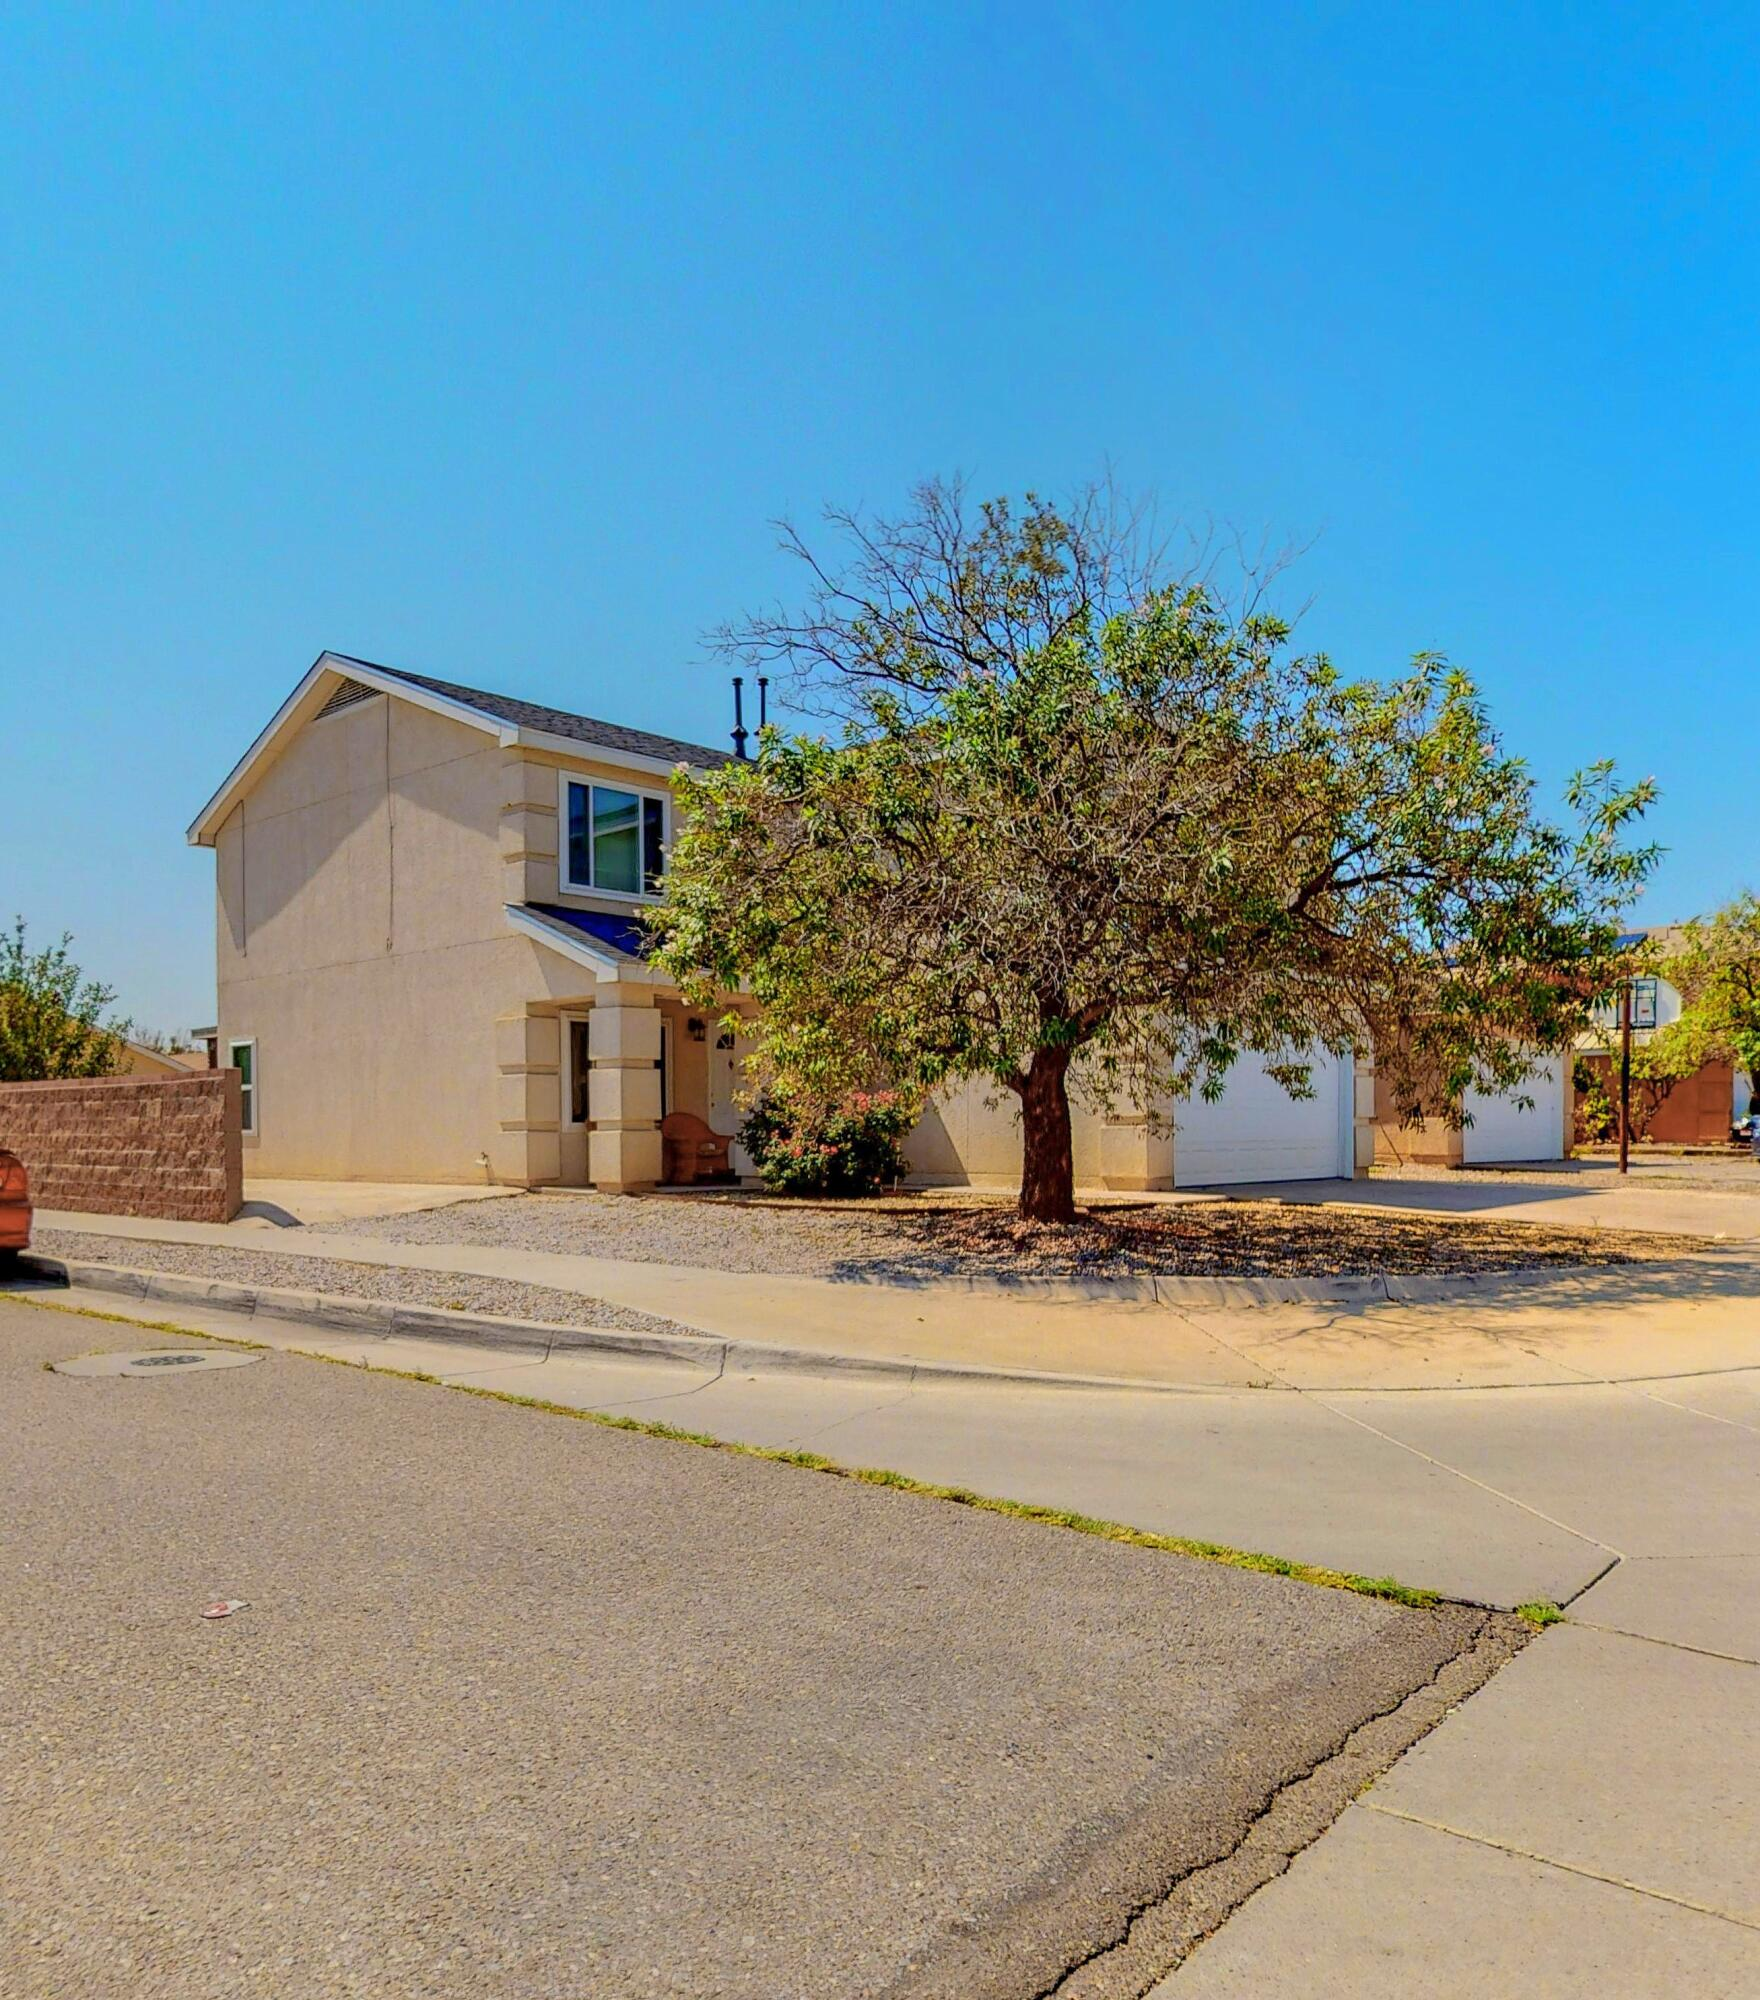 Welcome home to this well maintained, Sivage Thomas beauty! This home is situated on a huge corner lot, offers backyard access and a concrete pad for an RV or additional parking. The open floor plan offers a spacious living area complete with a fireplace, and opens to the sun filled kitchen with granite counters, and stainless steel range and OTR. Four generously sized bedrooms, plus a bonus loft perfect for an office/playroom or workout area. This home offers gleaming laminate flooring, tile in wet areas and new carpet in the bedrooms. Recent updates include fresh paint, A/C unit and windows. Enjoy the evening entertaining, or relaxing under the oversized custom covered patio. Home Sweet Home!